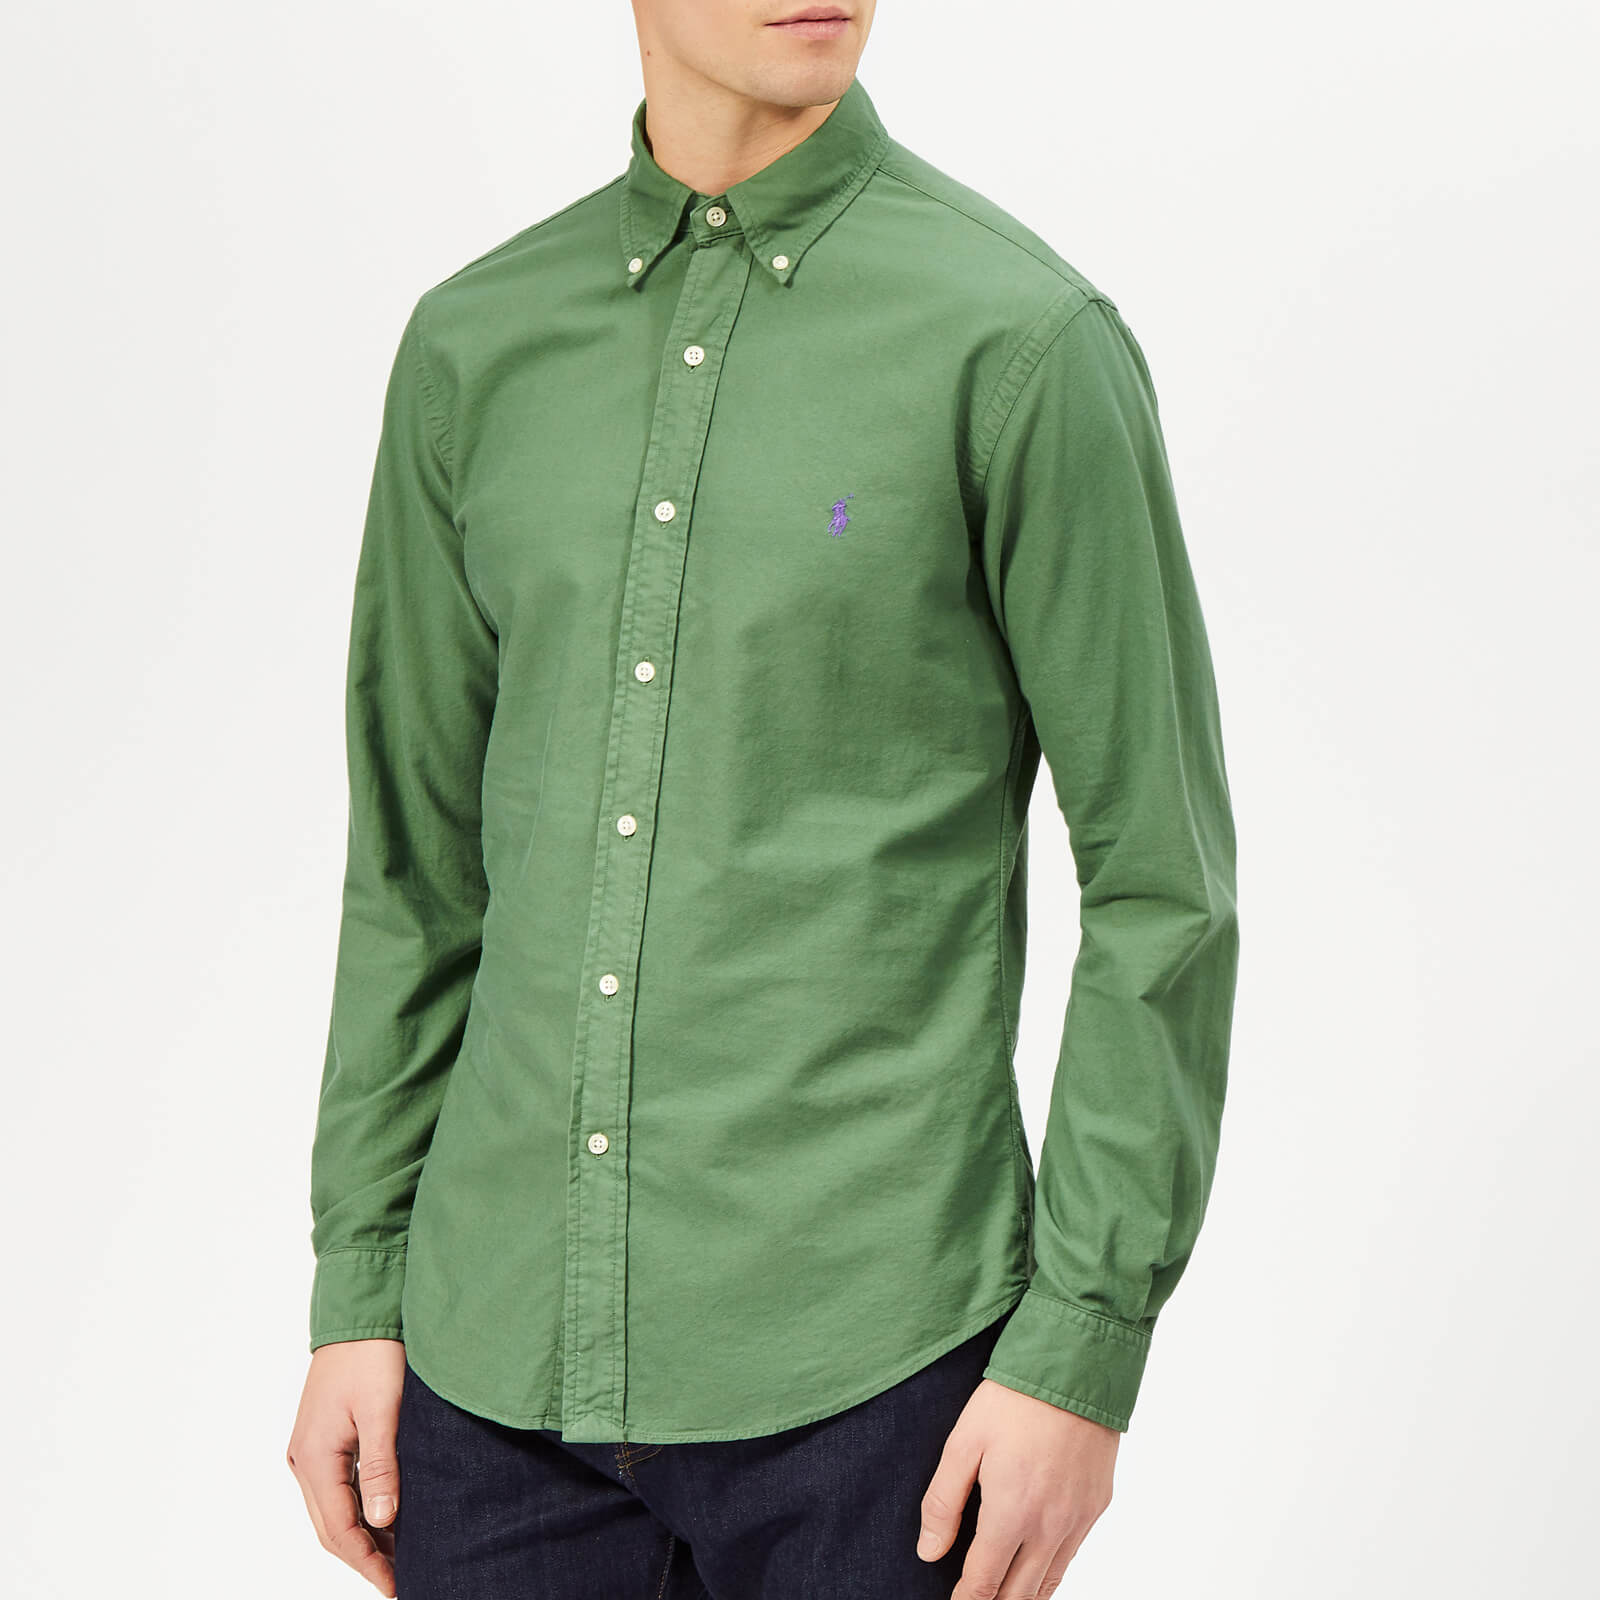 2f2f83de6c514 Polo Ralph Lauren Men's Garment Dyed Oxford Long Sleeve Shirt - Stuart  Green - Free UK Delivery over £50